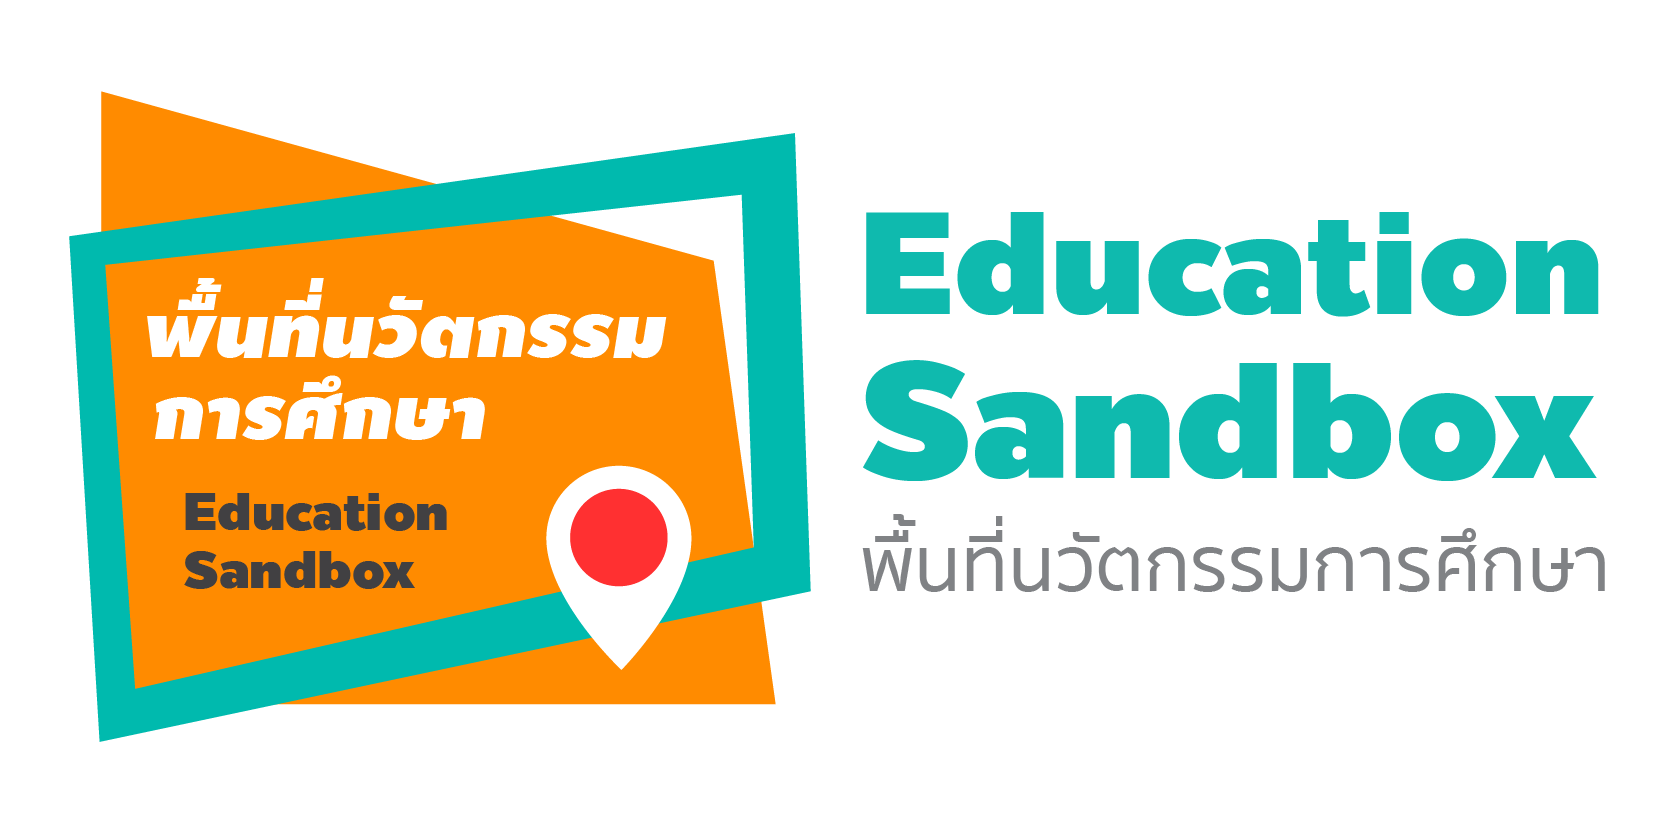 EducationSandbox